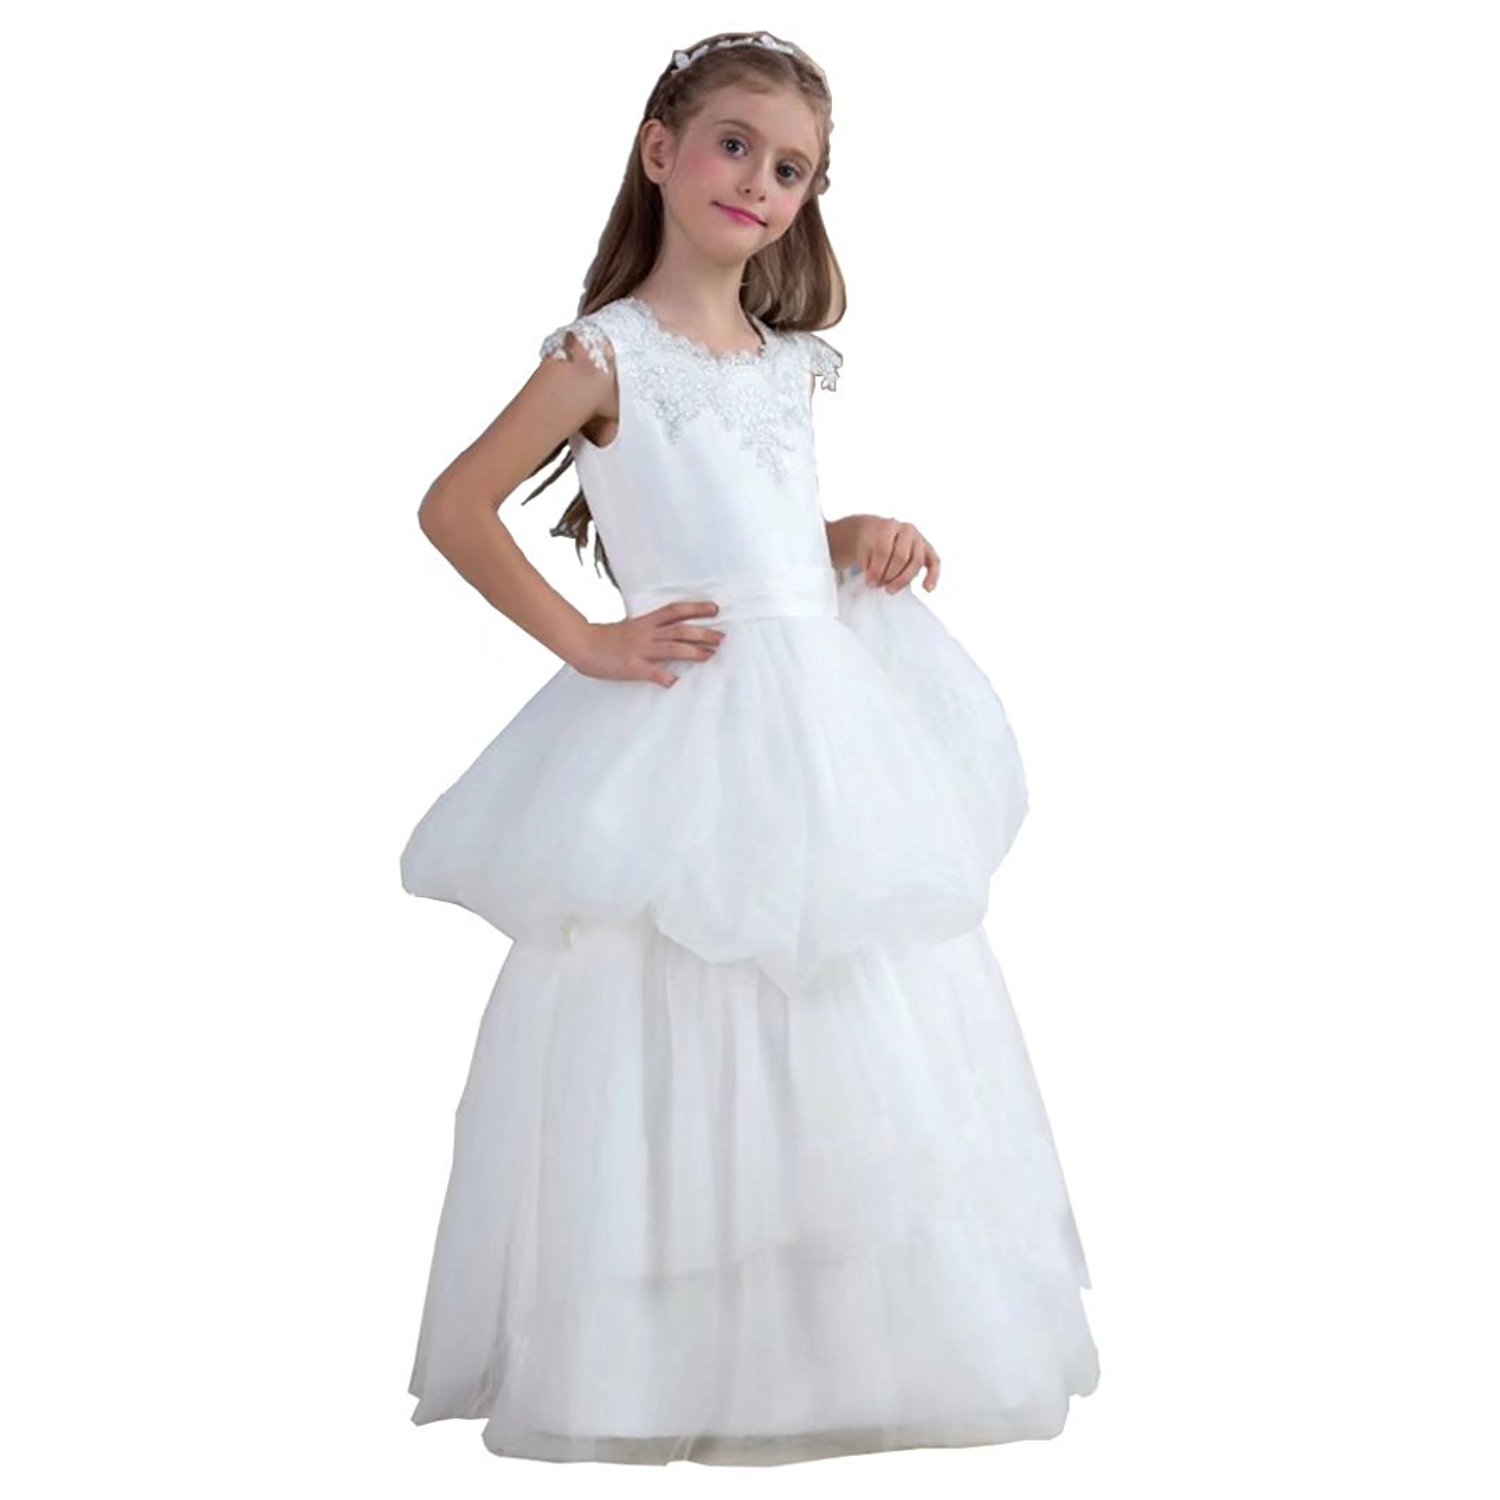 ec4838e261d4e Cheap Puffy White Dress, find Puffy White Dress deals on line at ...